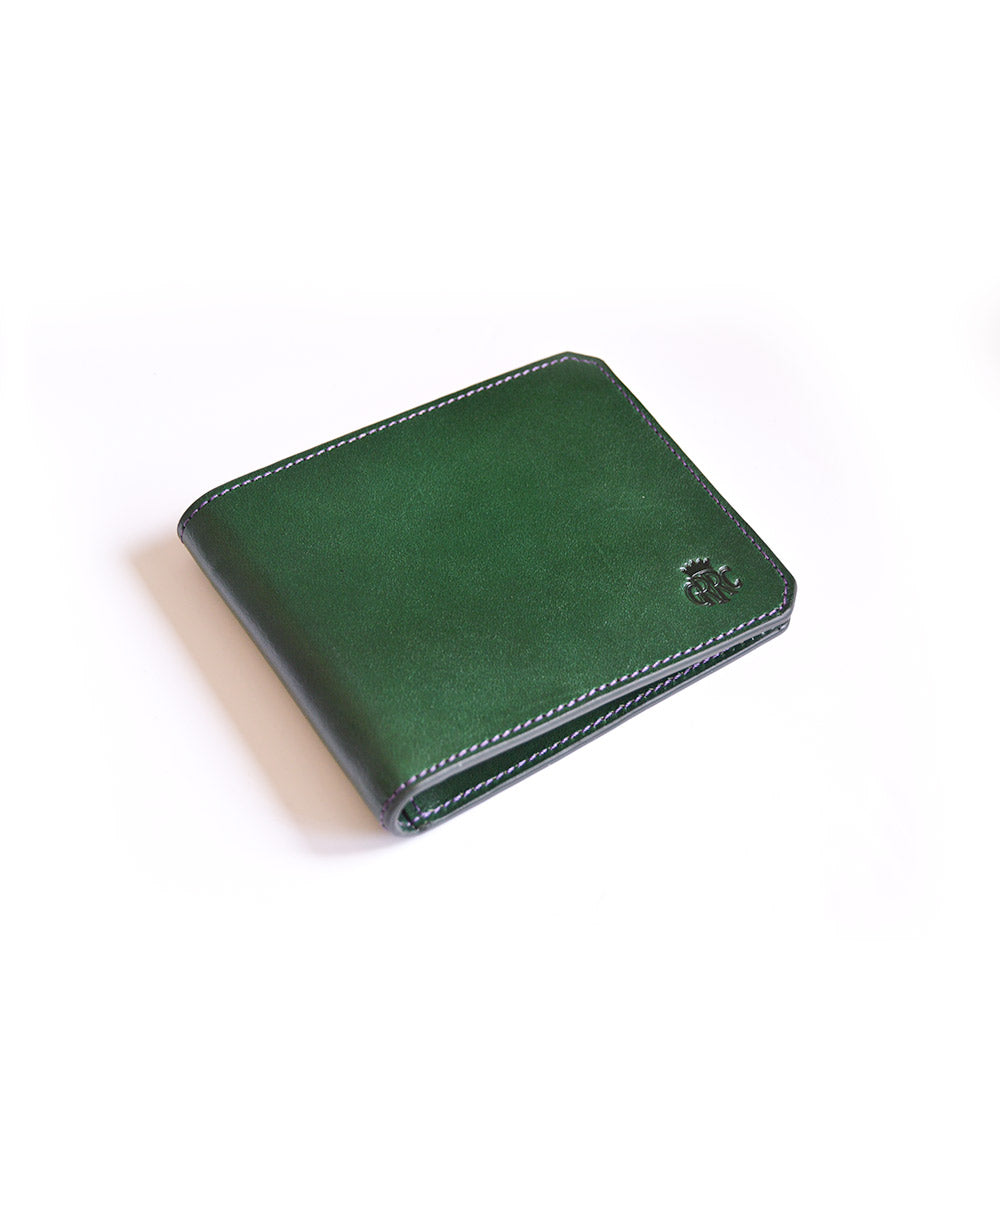 GRRC Leather Wallet in Green & Purple